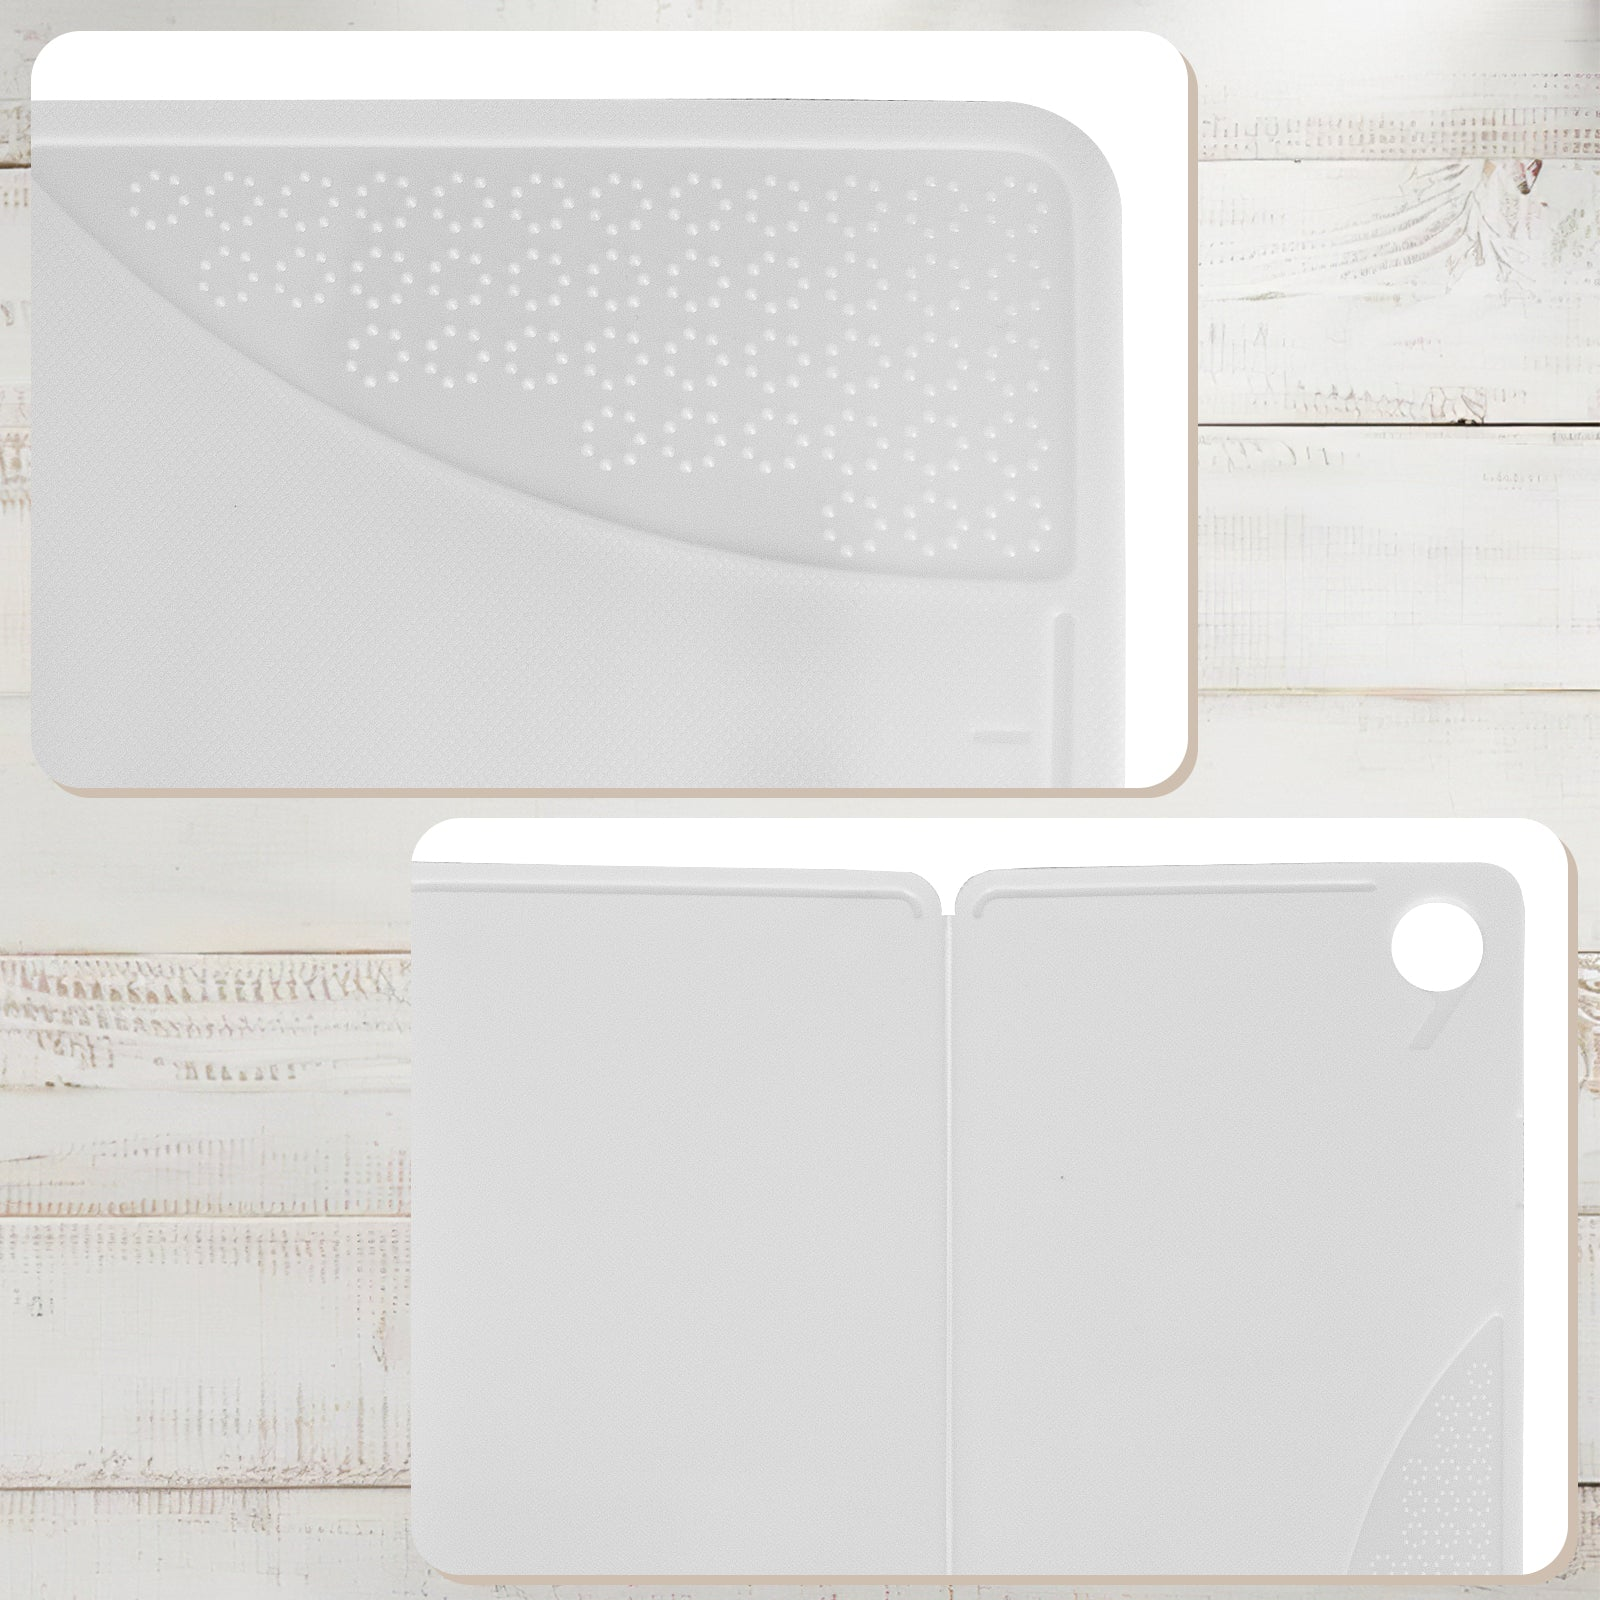 MINISO Foldable Kitchen Cutting Board (White)